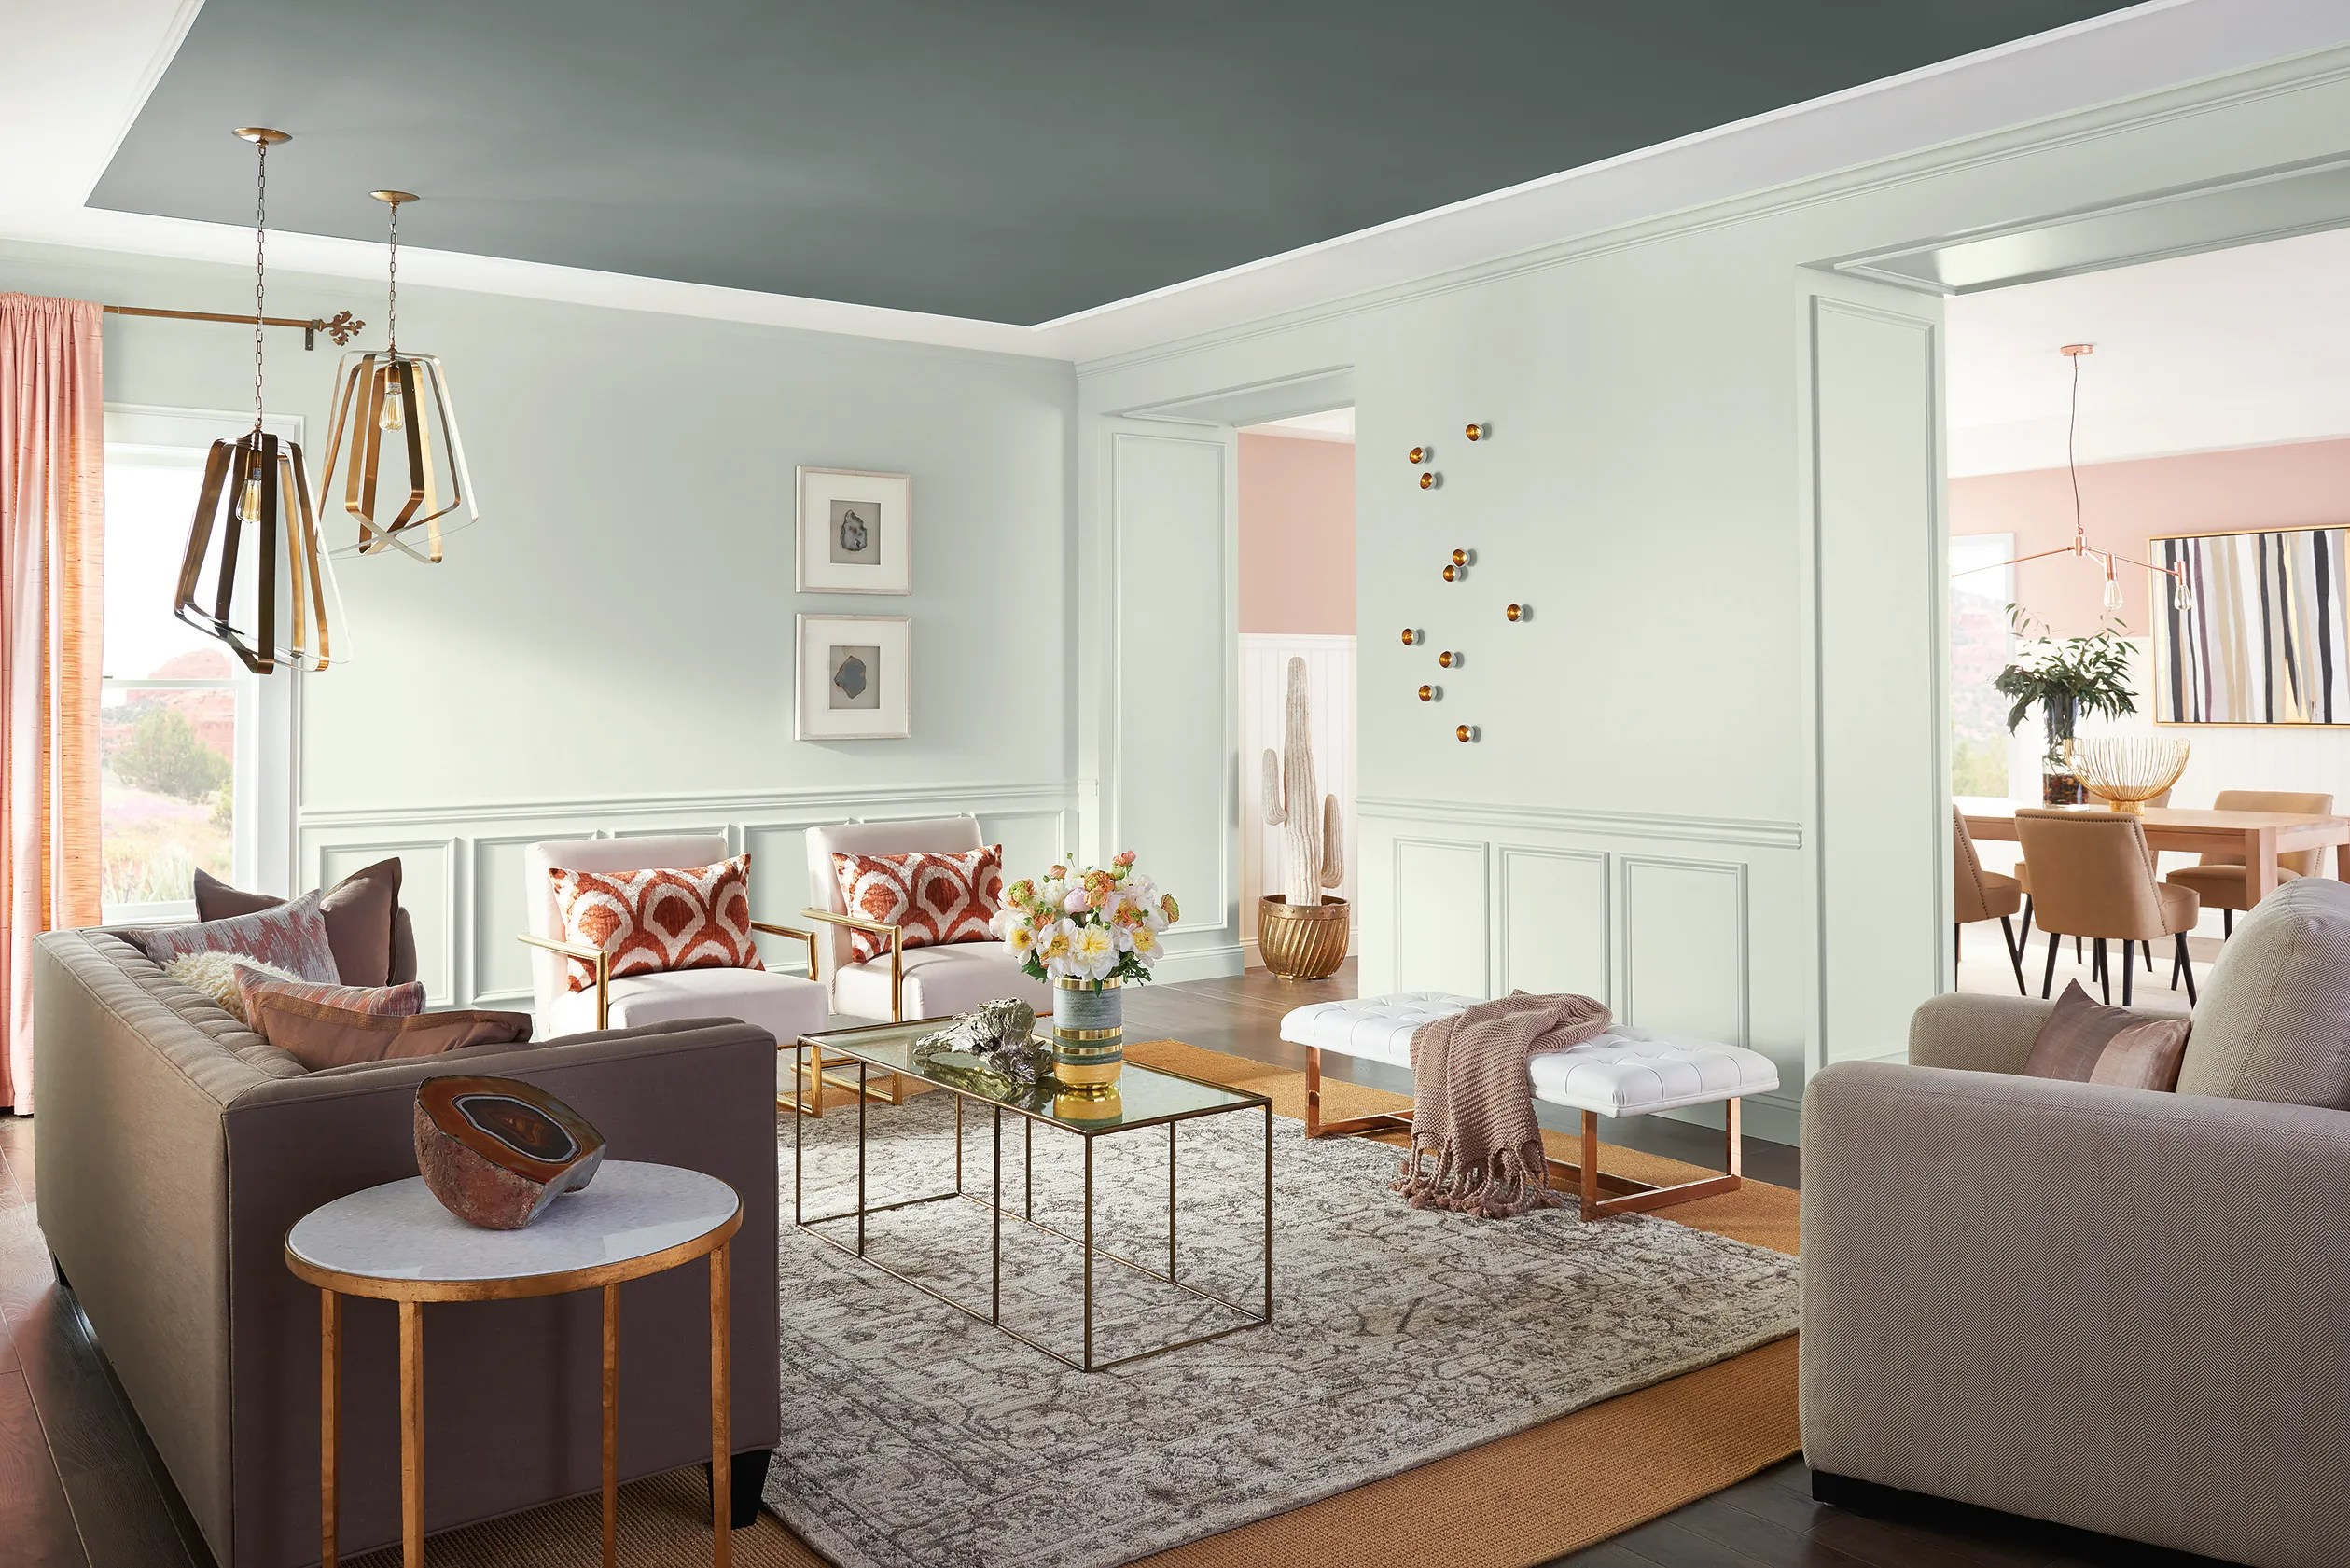 new sherwin williams paint colors are unveiled on paint colors by sherwin williams id=60091